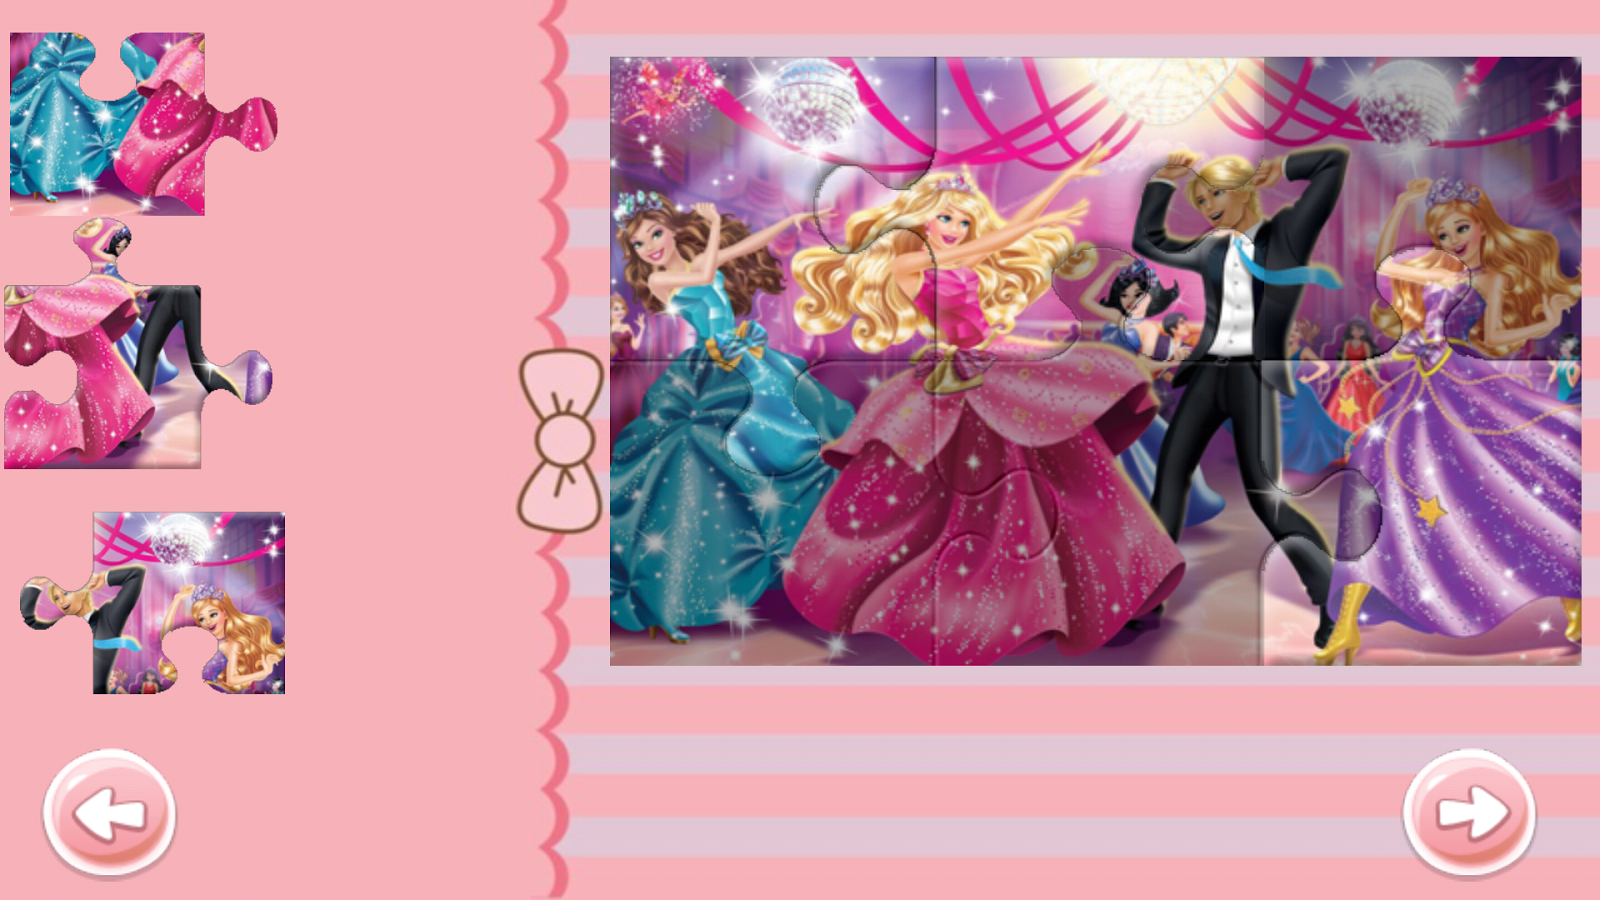 Princess-Puzzle-For-Toddlers-2 19